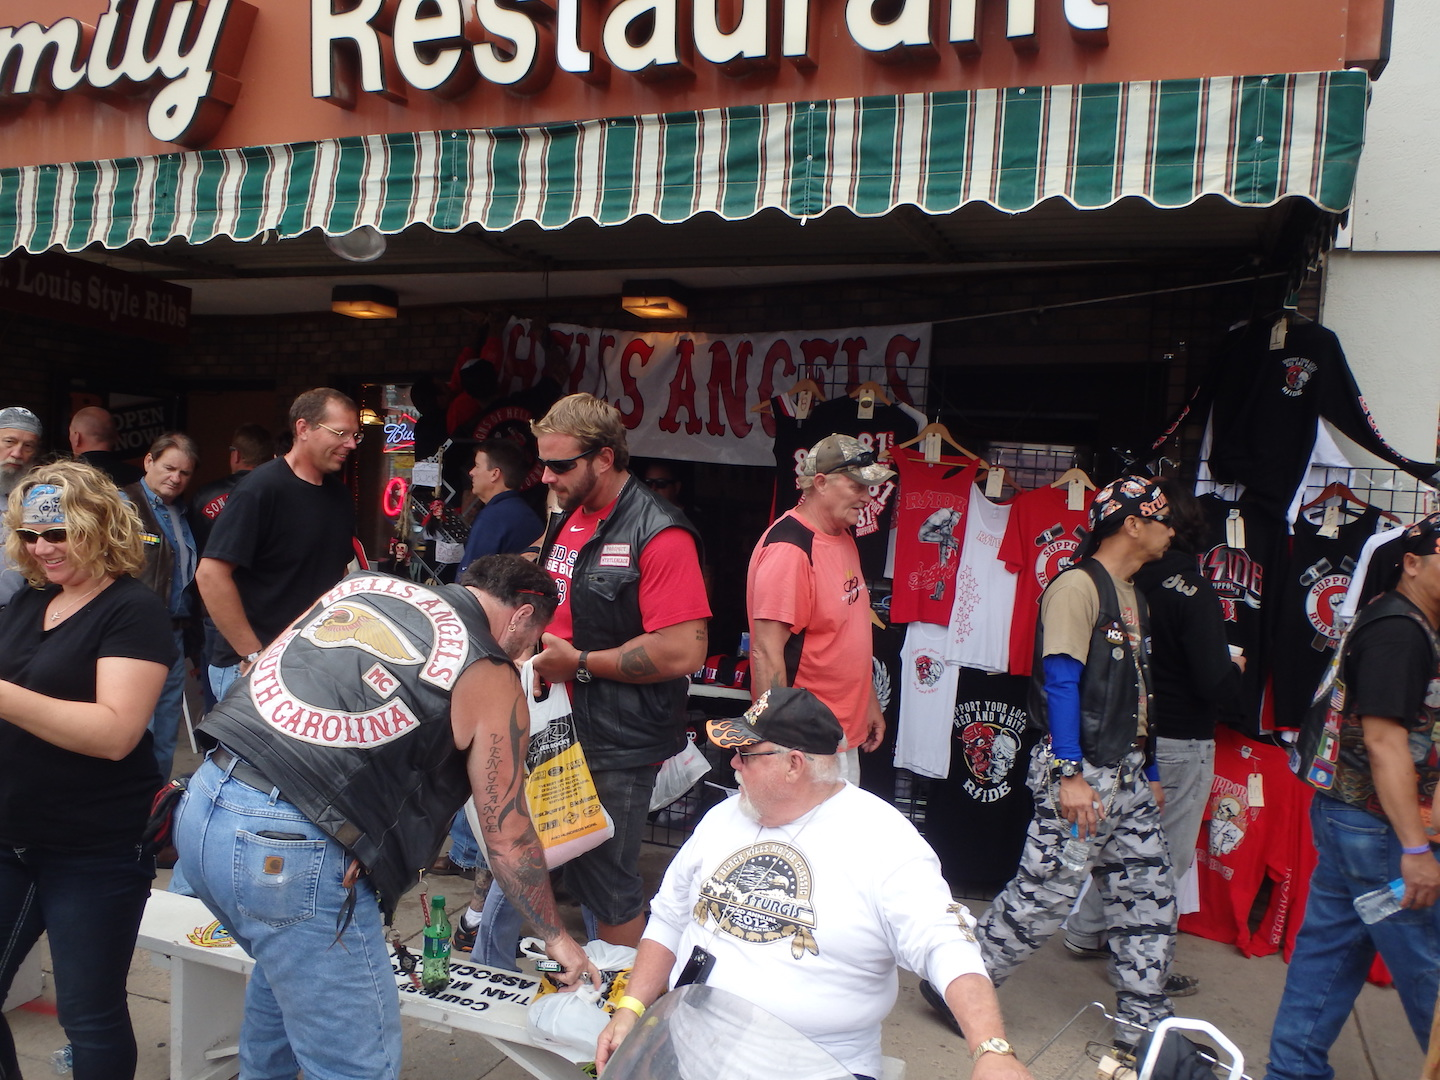 Hells Angels stall at the Sturgis Motorcycle Rally fashion